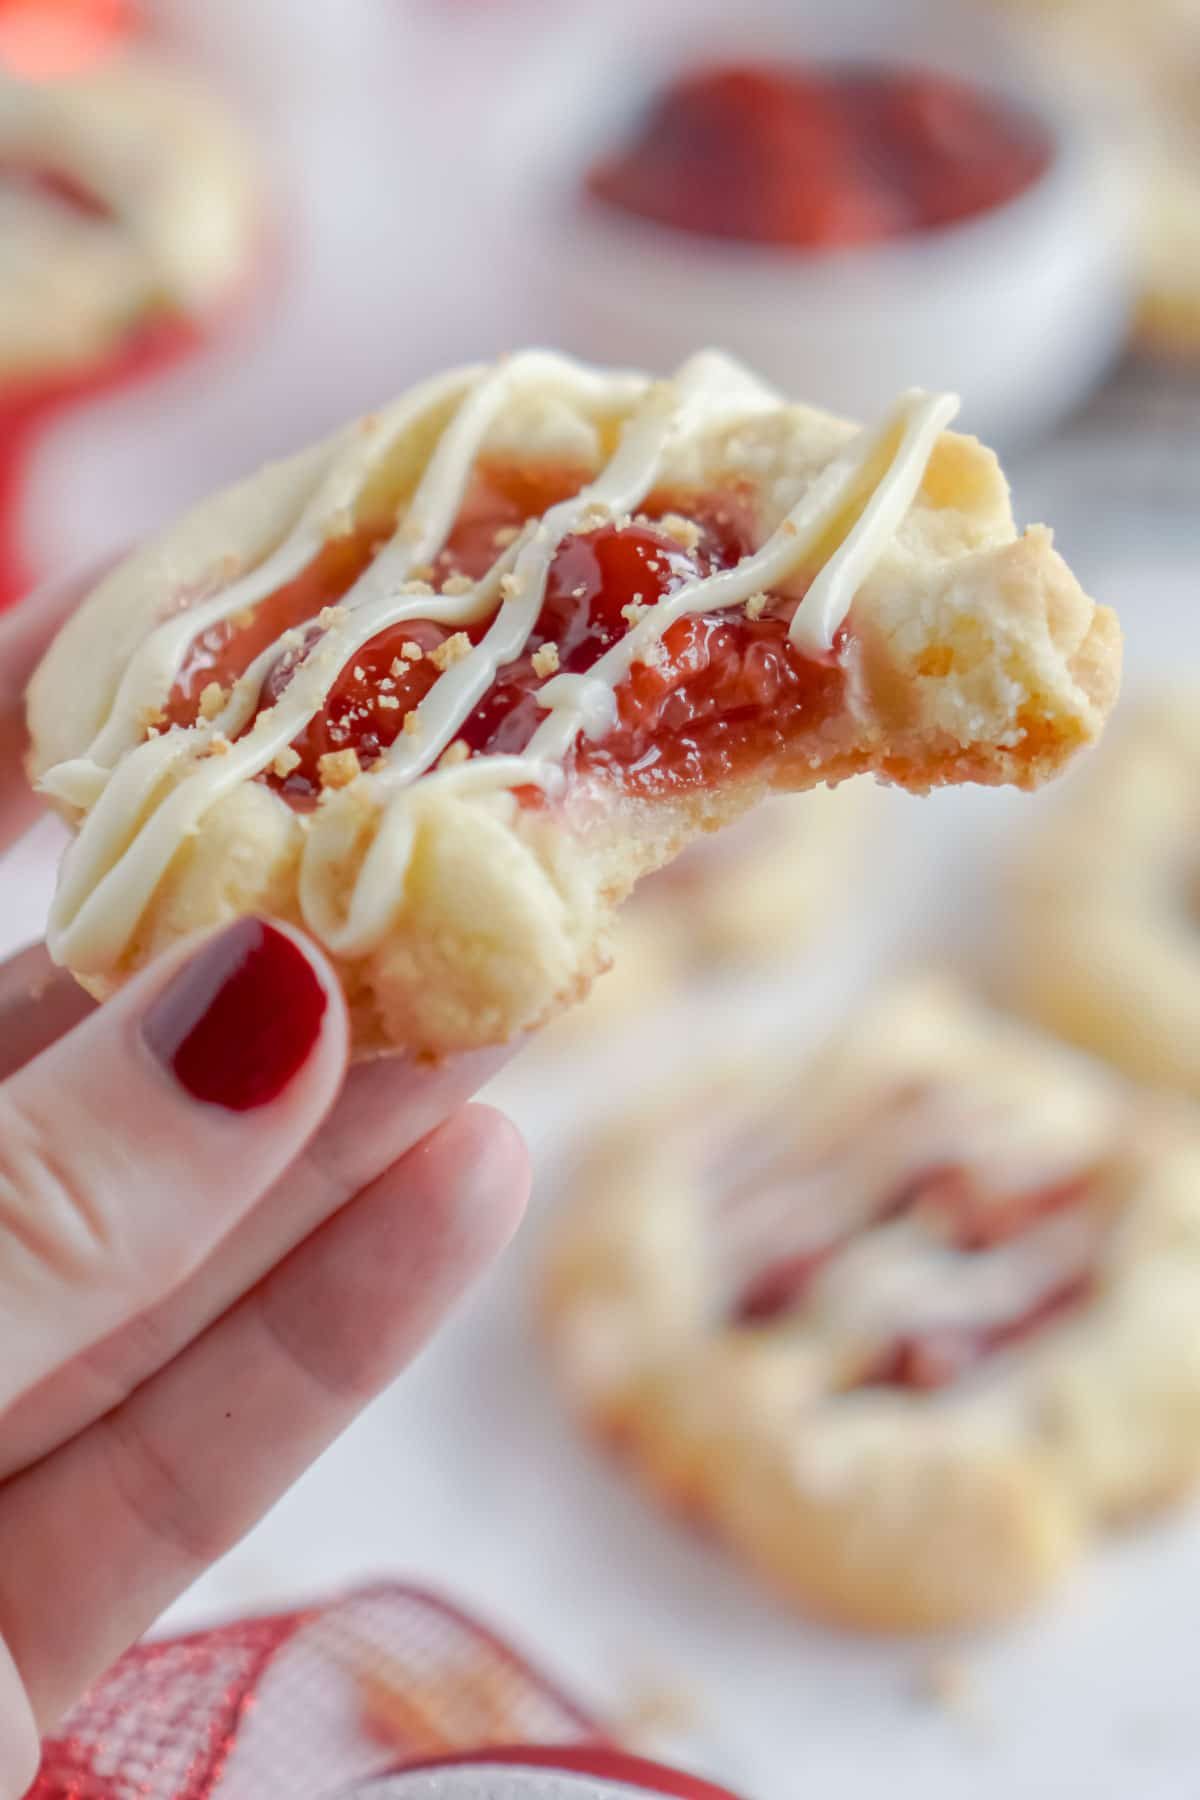 Hand holding a cherry cheesecake cookie with a bite taken out